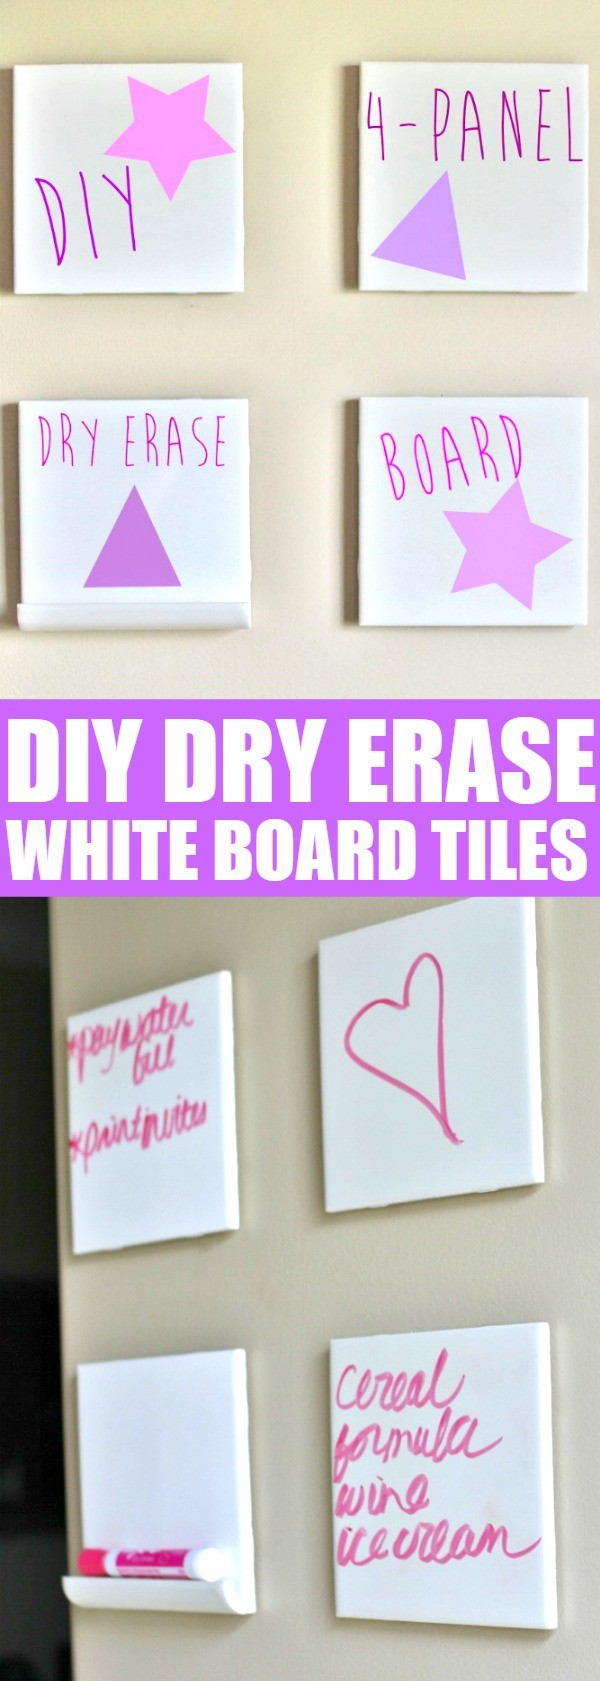 Make Your Own Diy Dry Erase White Board Tiles Craft I Love This Idea